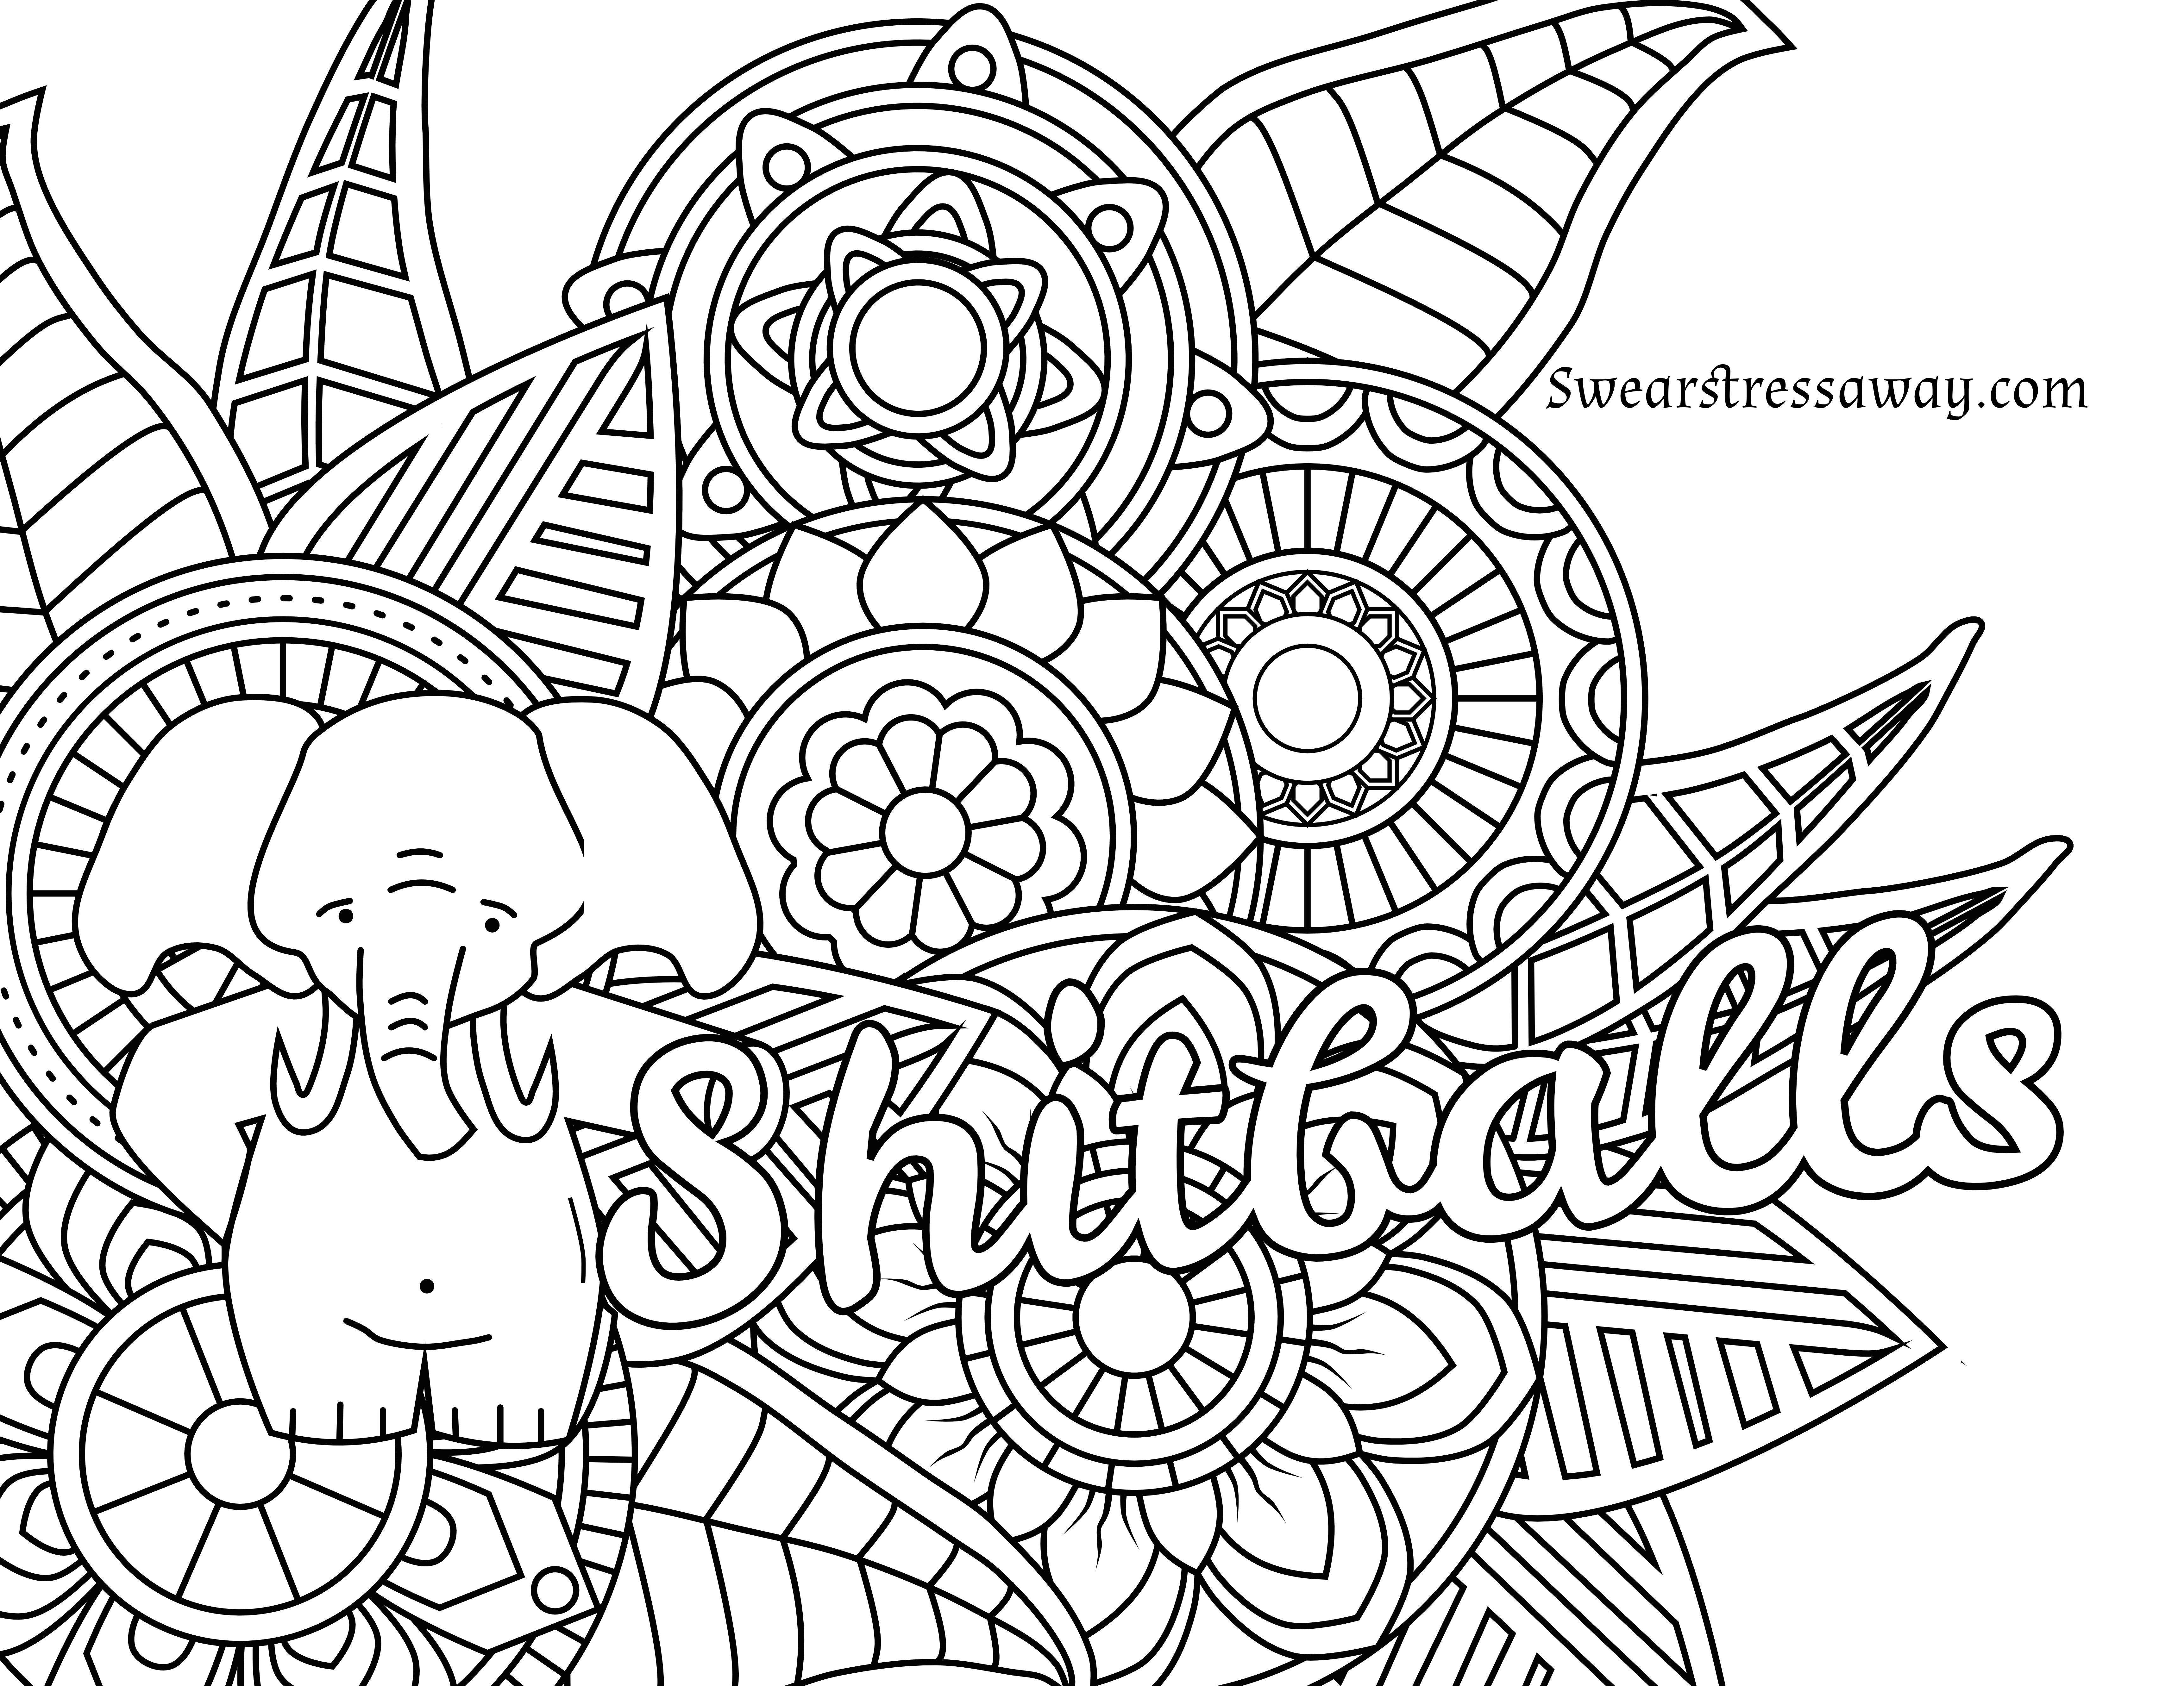 free printable coloring page - shitballs - swear word